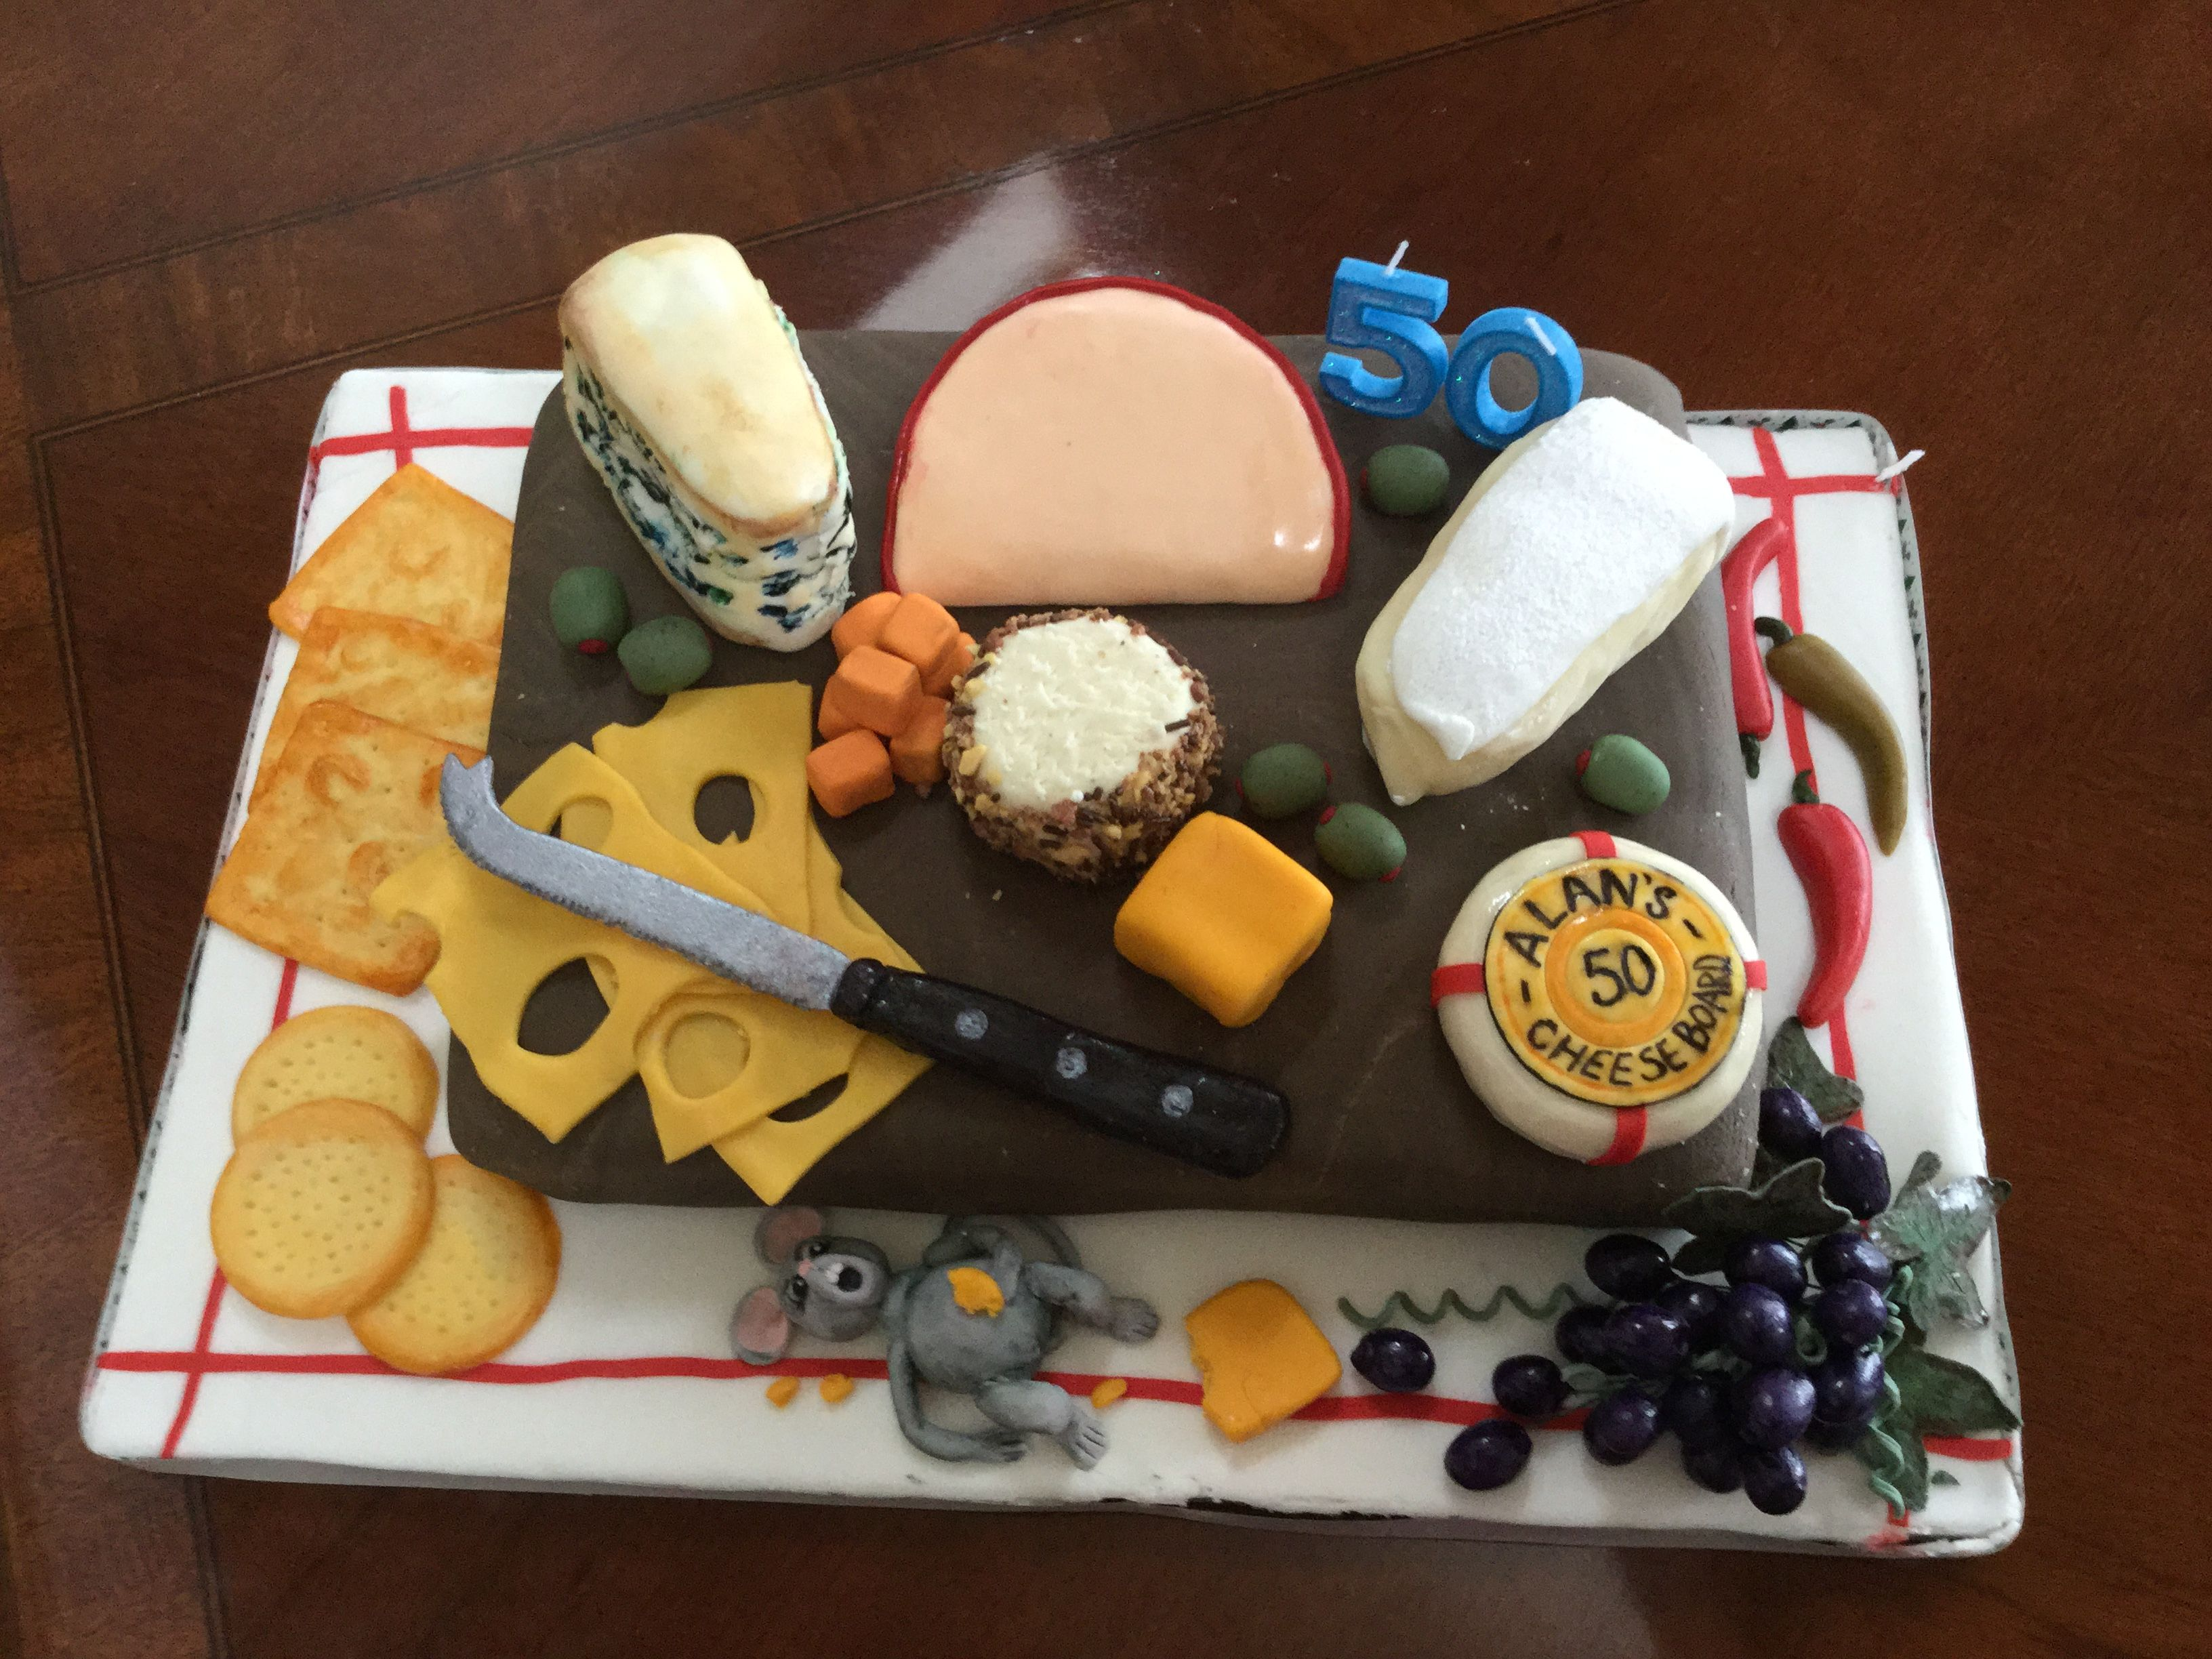 cheese board 50th birthday cakeEverything made with cake and